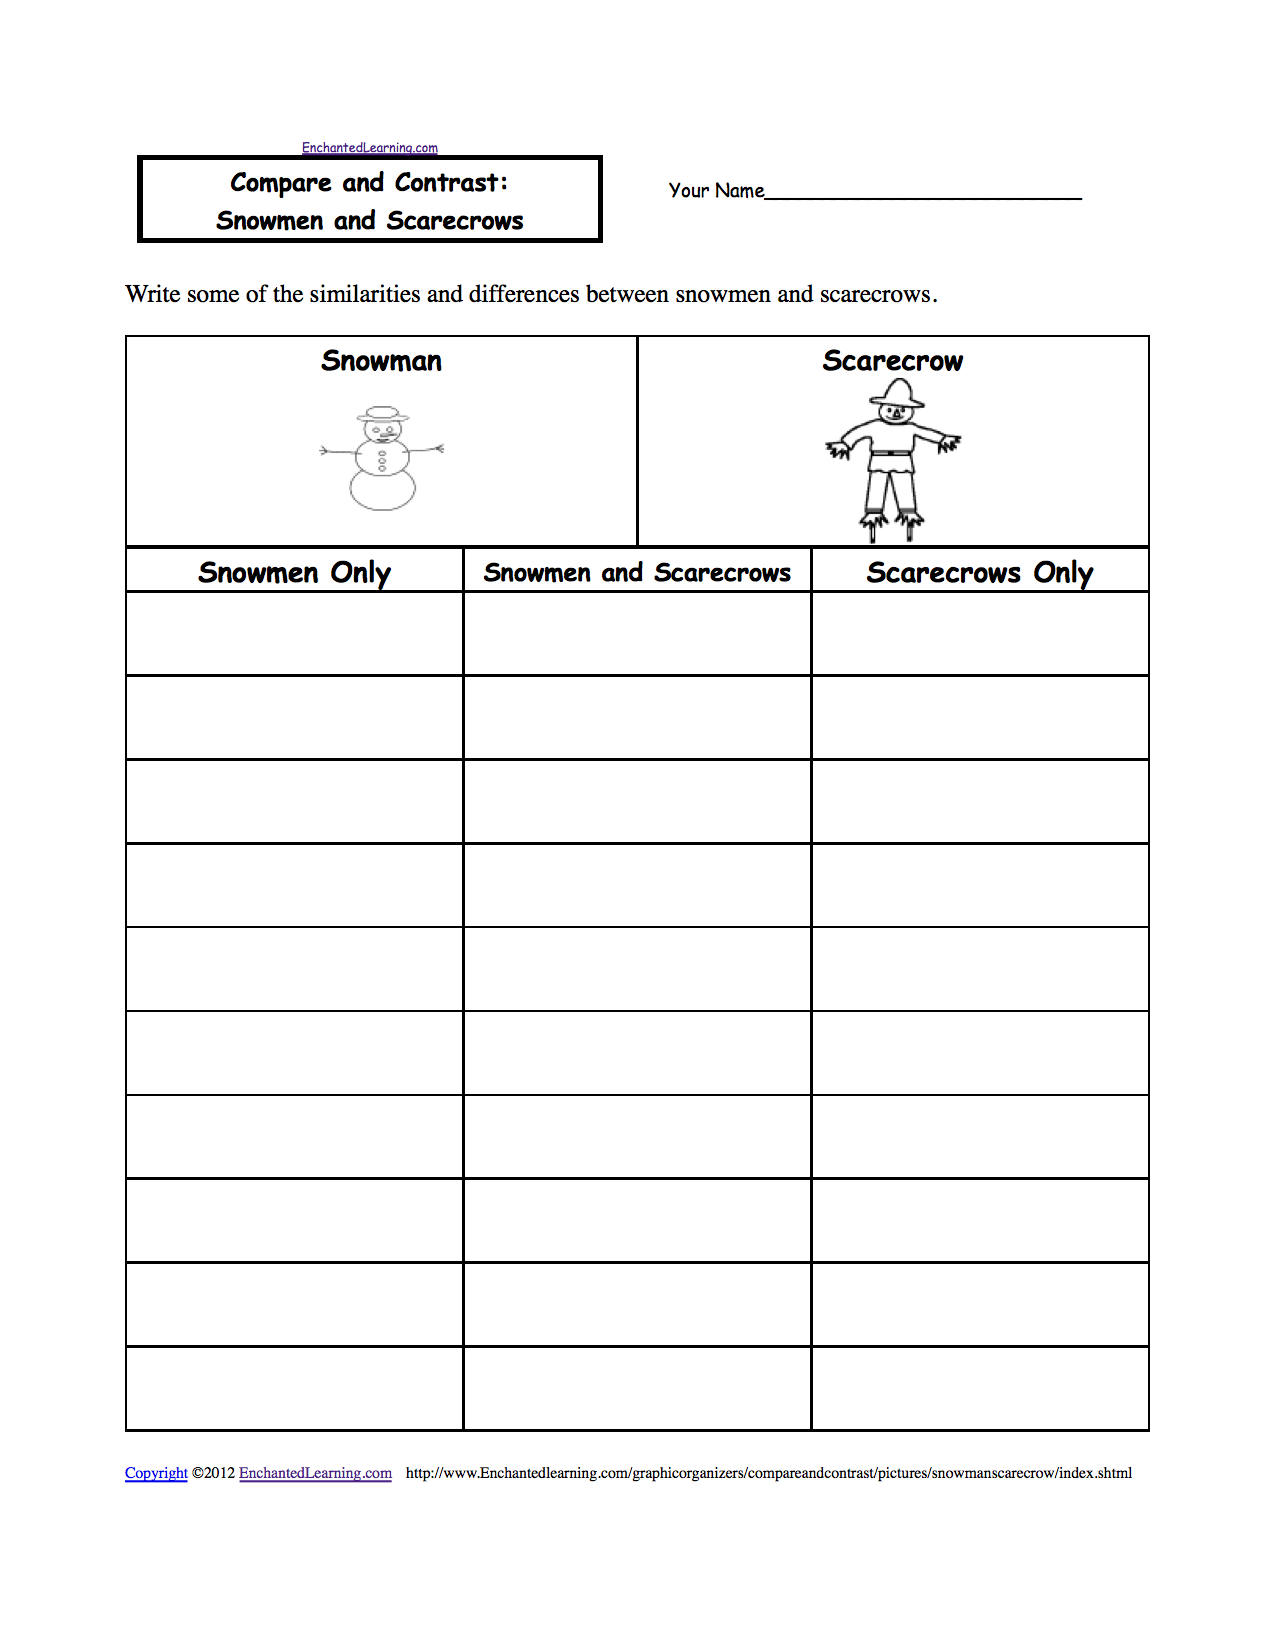 Printables Compare And Contrast Worksheets 2nd Grade compare and contrast worksheets to print enchantedlearning com snowmen scarecrows